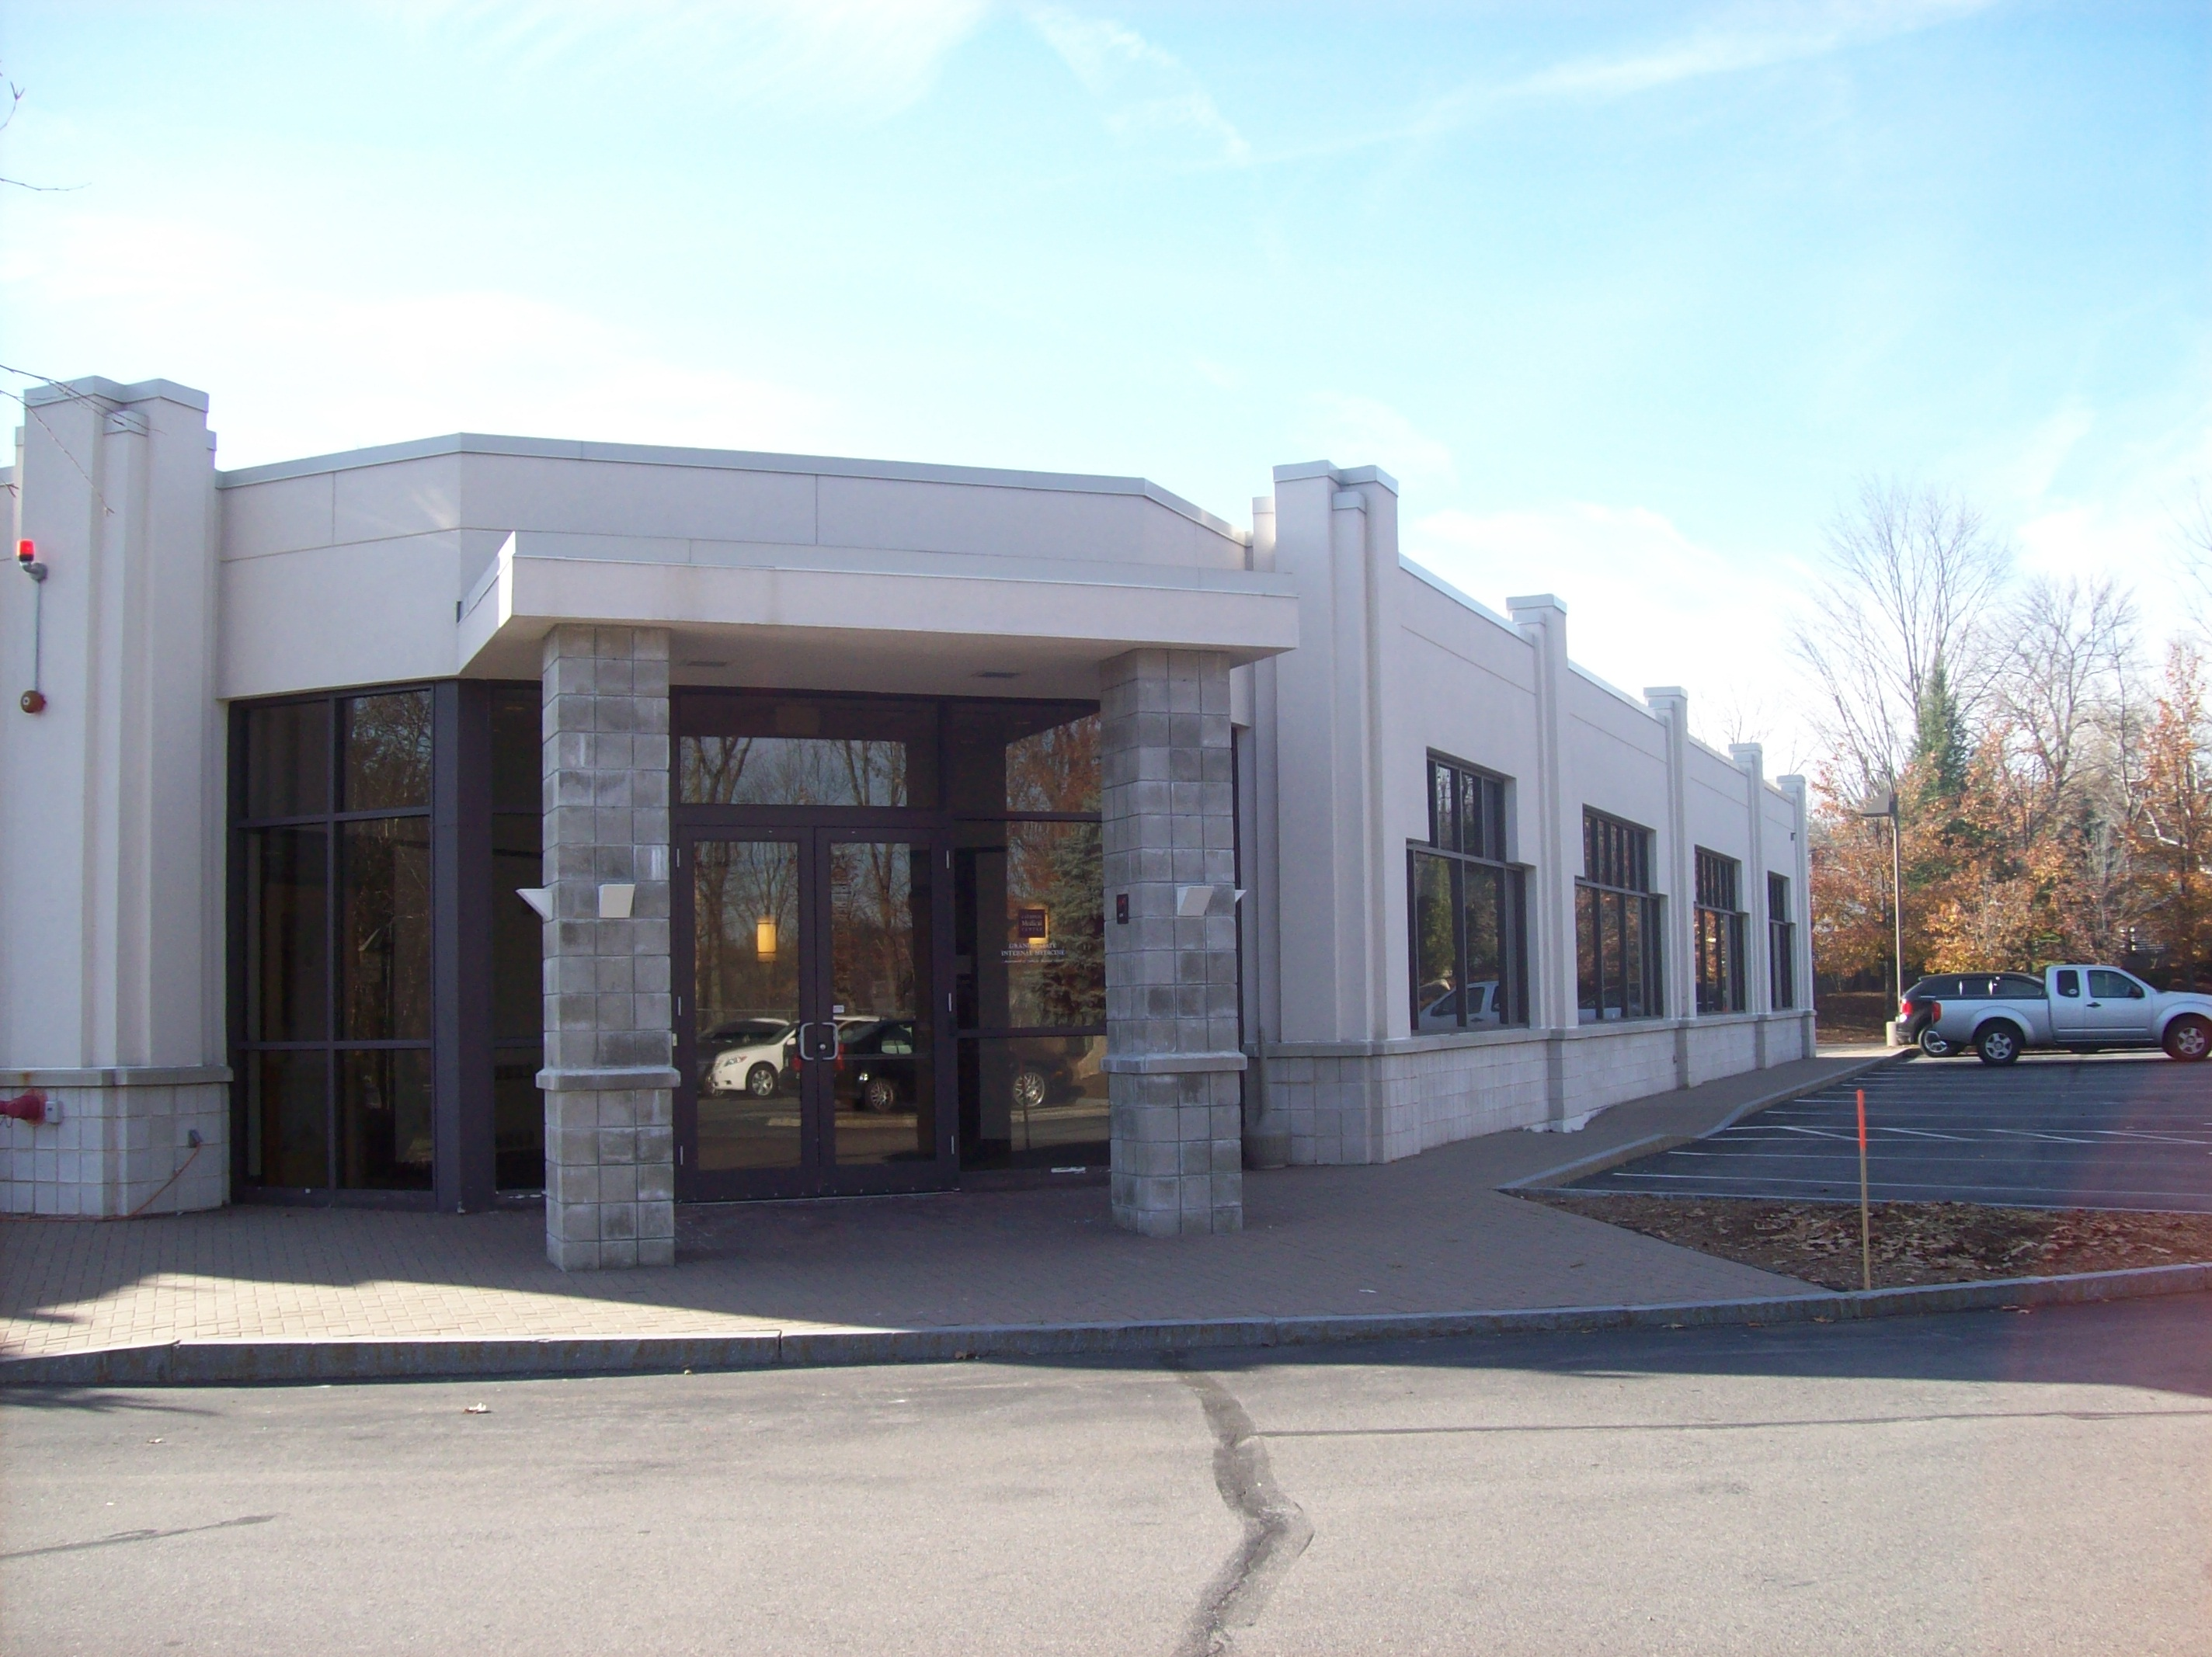 53 Goffstown Road, Manchester, NH - For Lease